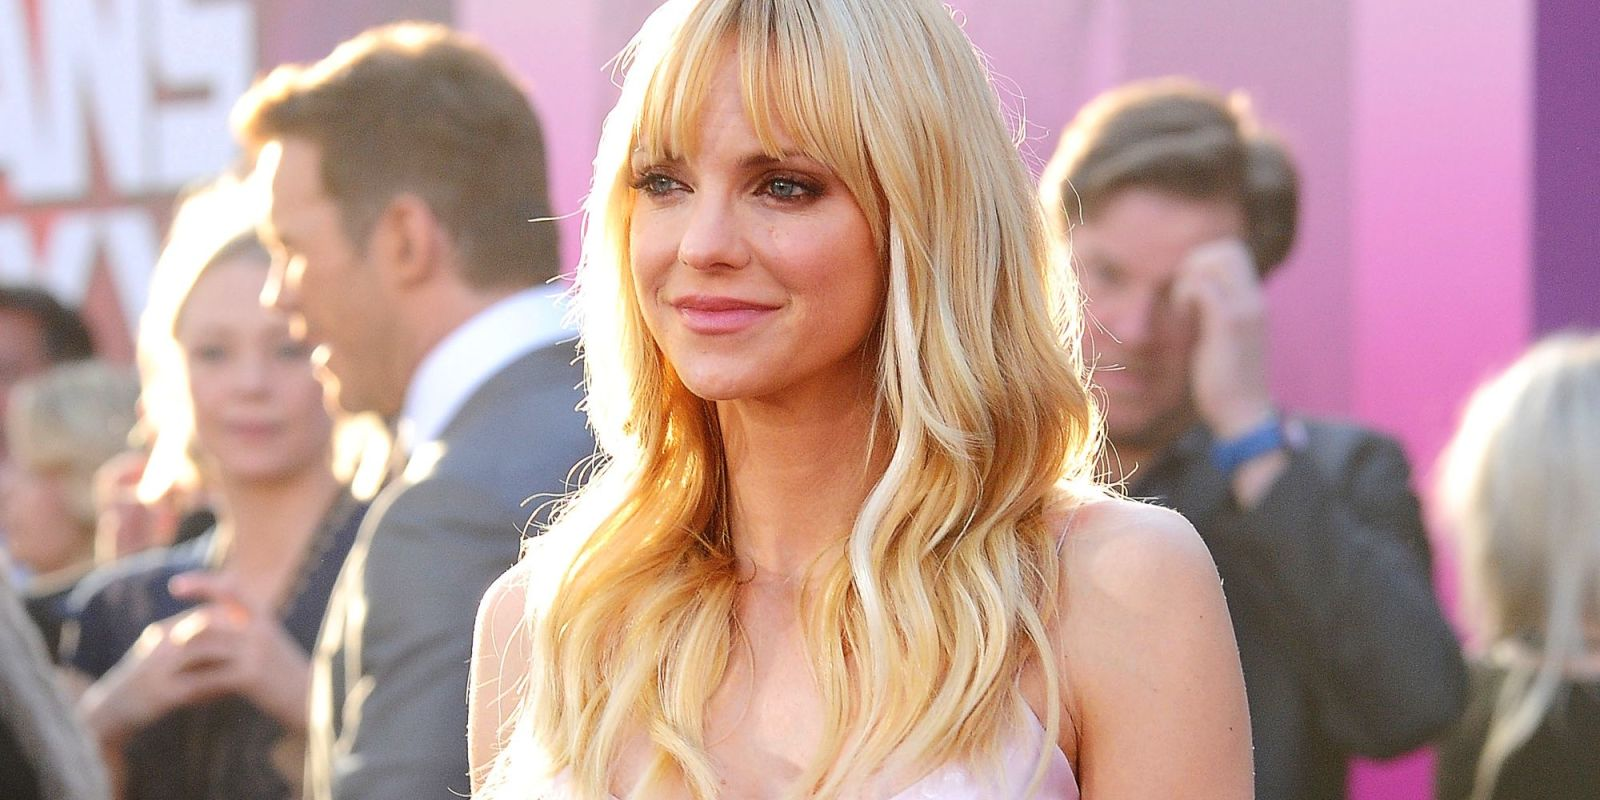 9 Chris Pratt Stories That Make It Hard to Read the New Anna Faris Book